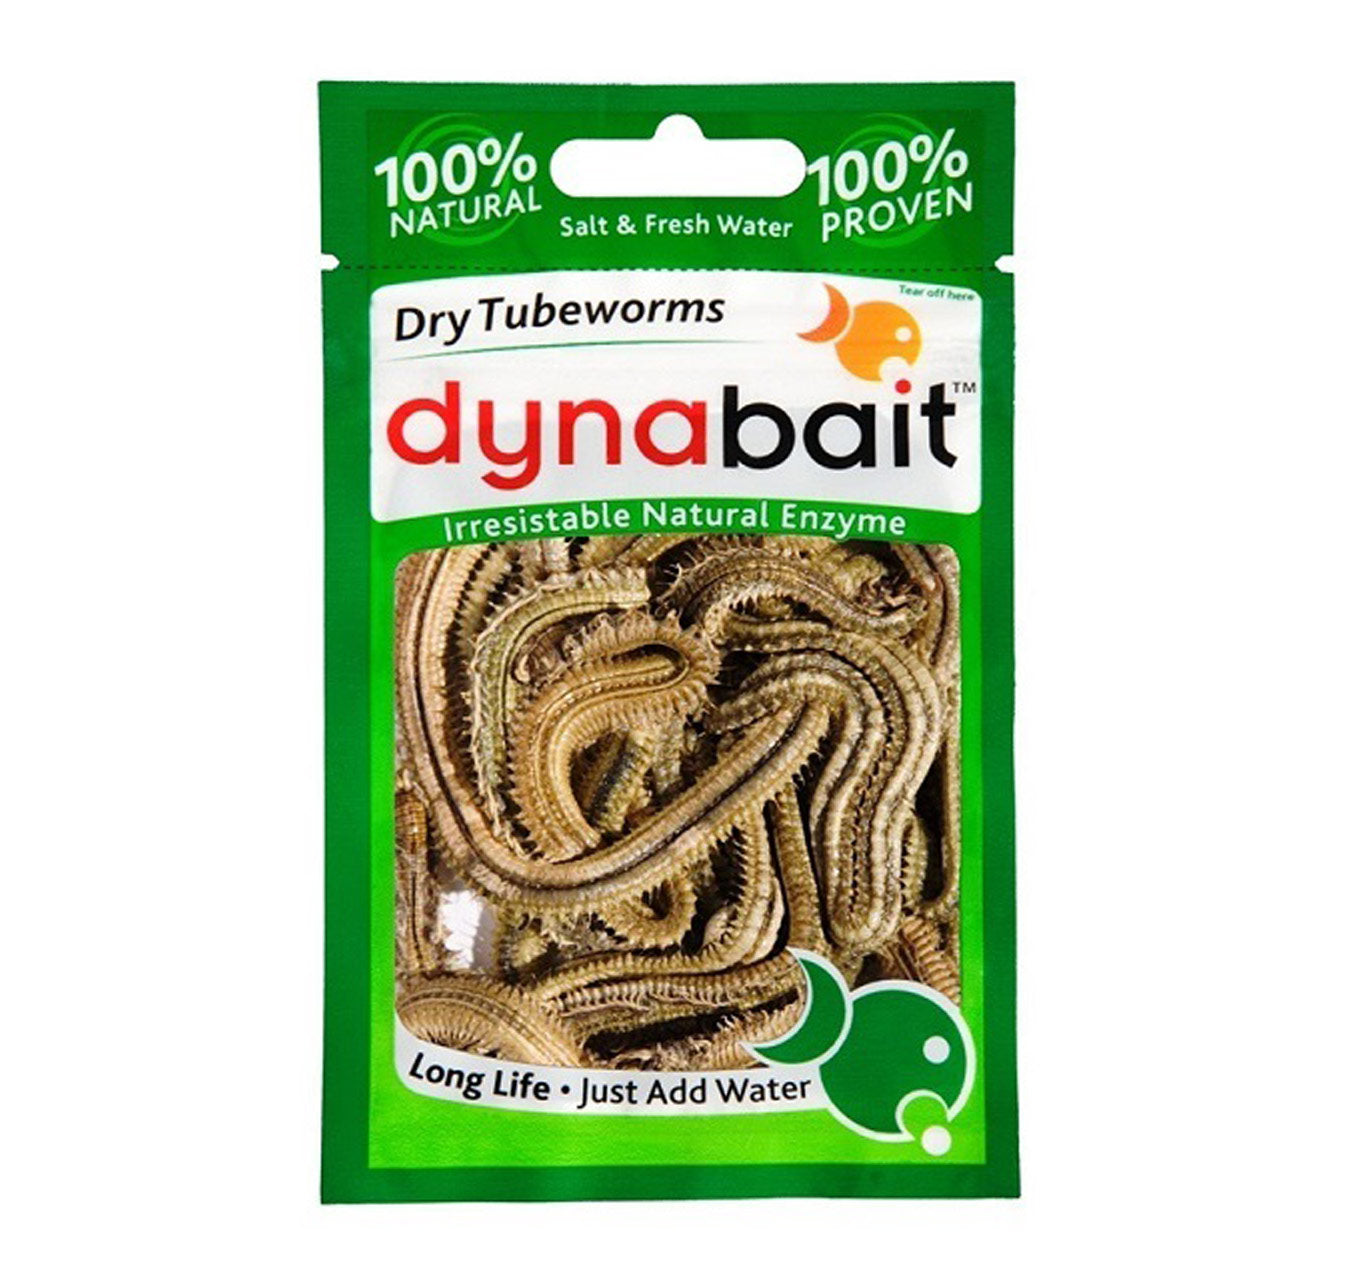 Dynabait Dry Tube Worms